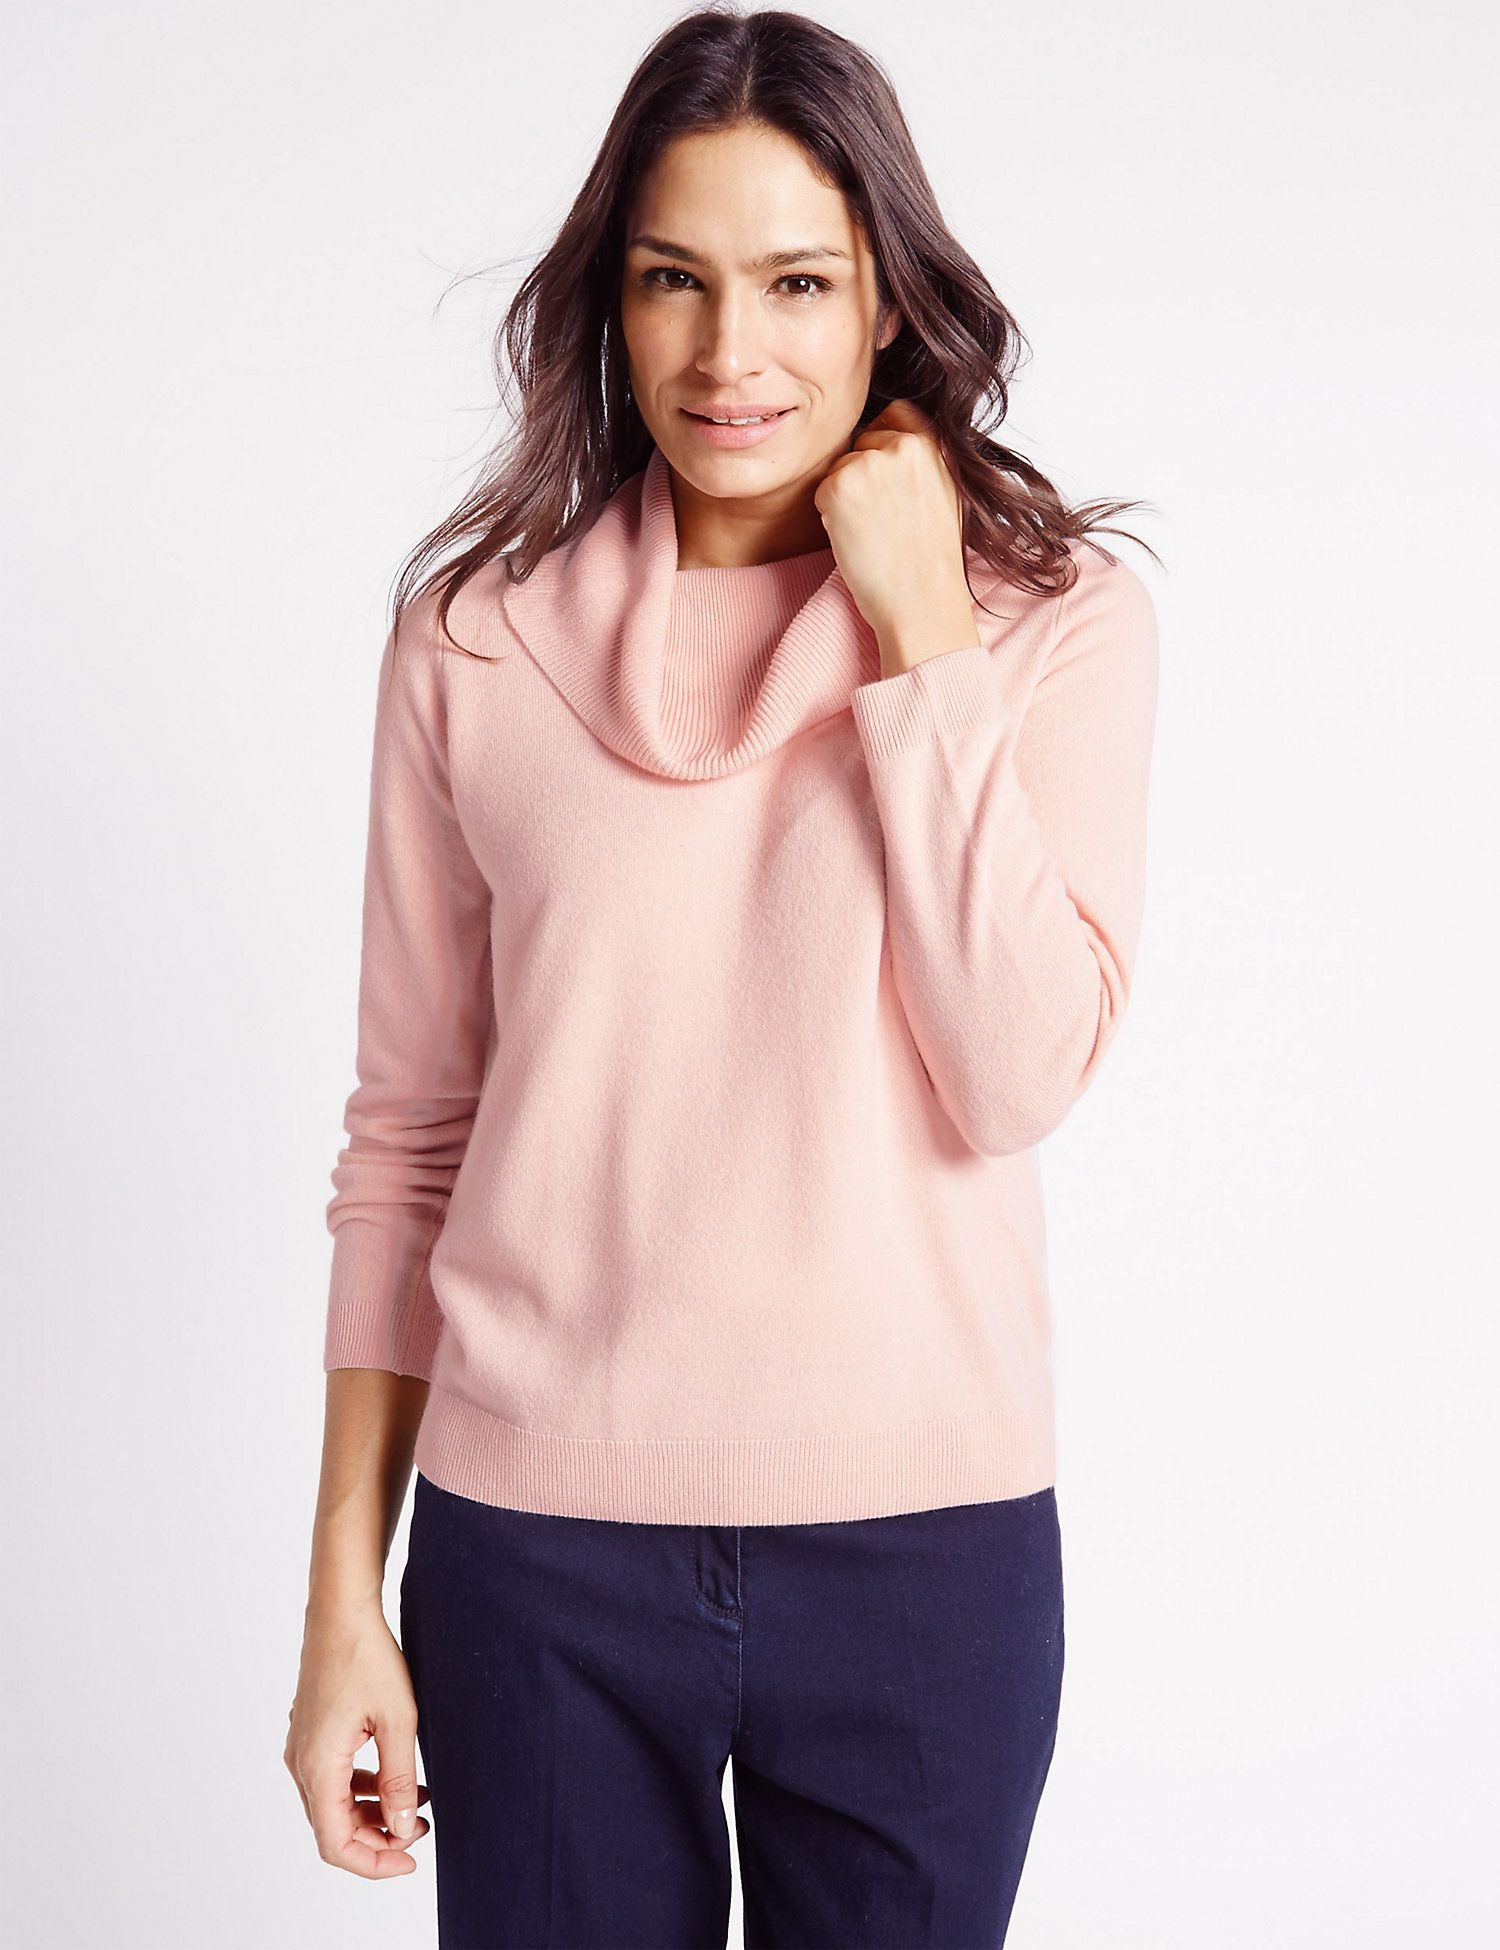 Cowl Neck Long Sleeve Jumper в 2020 г